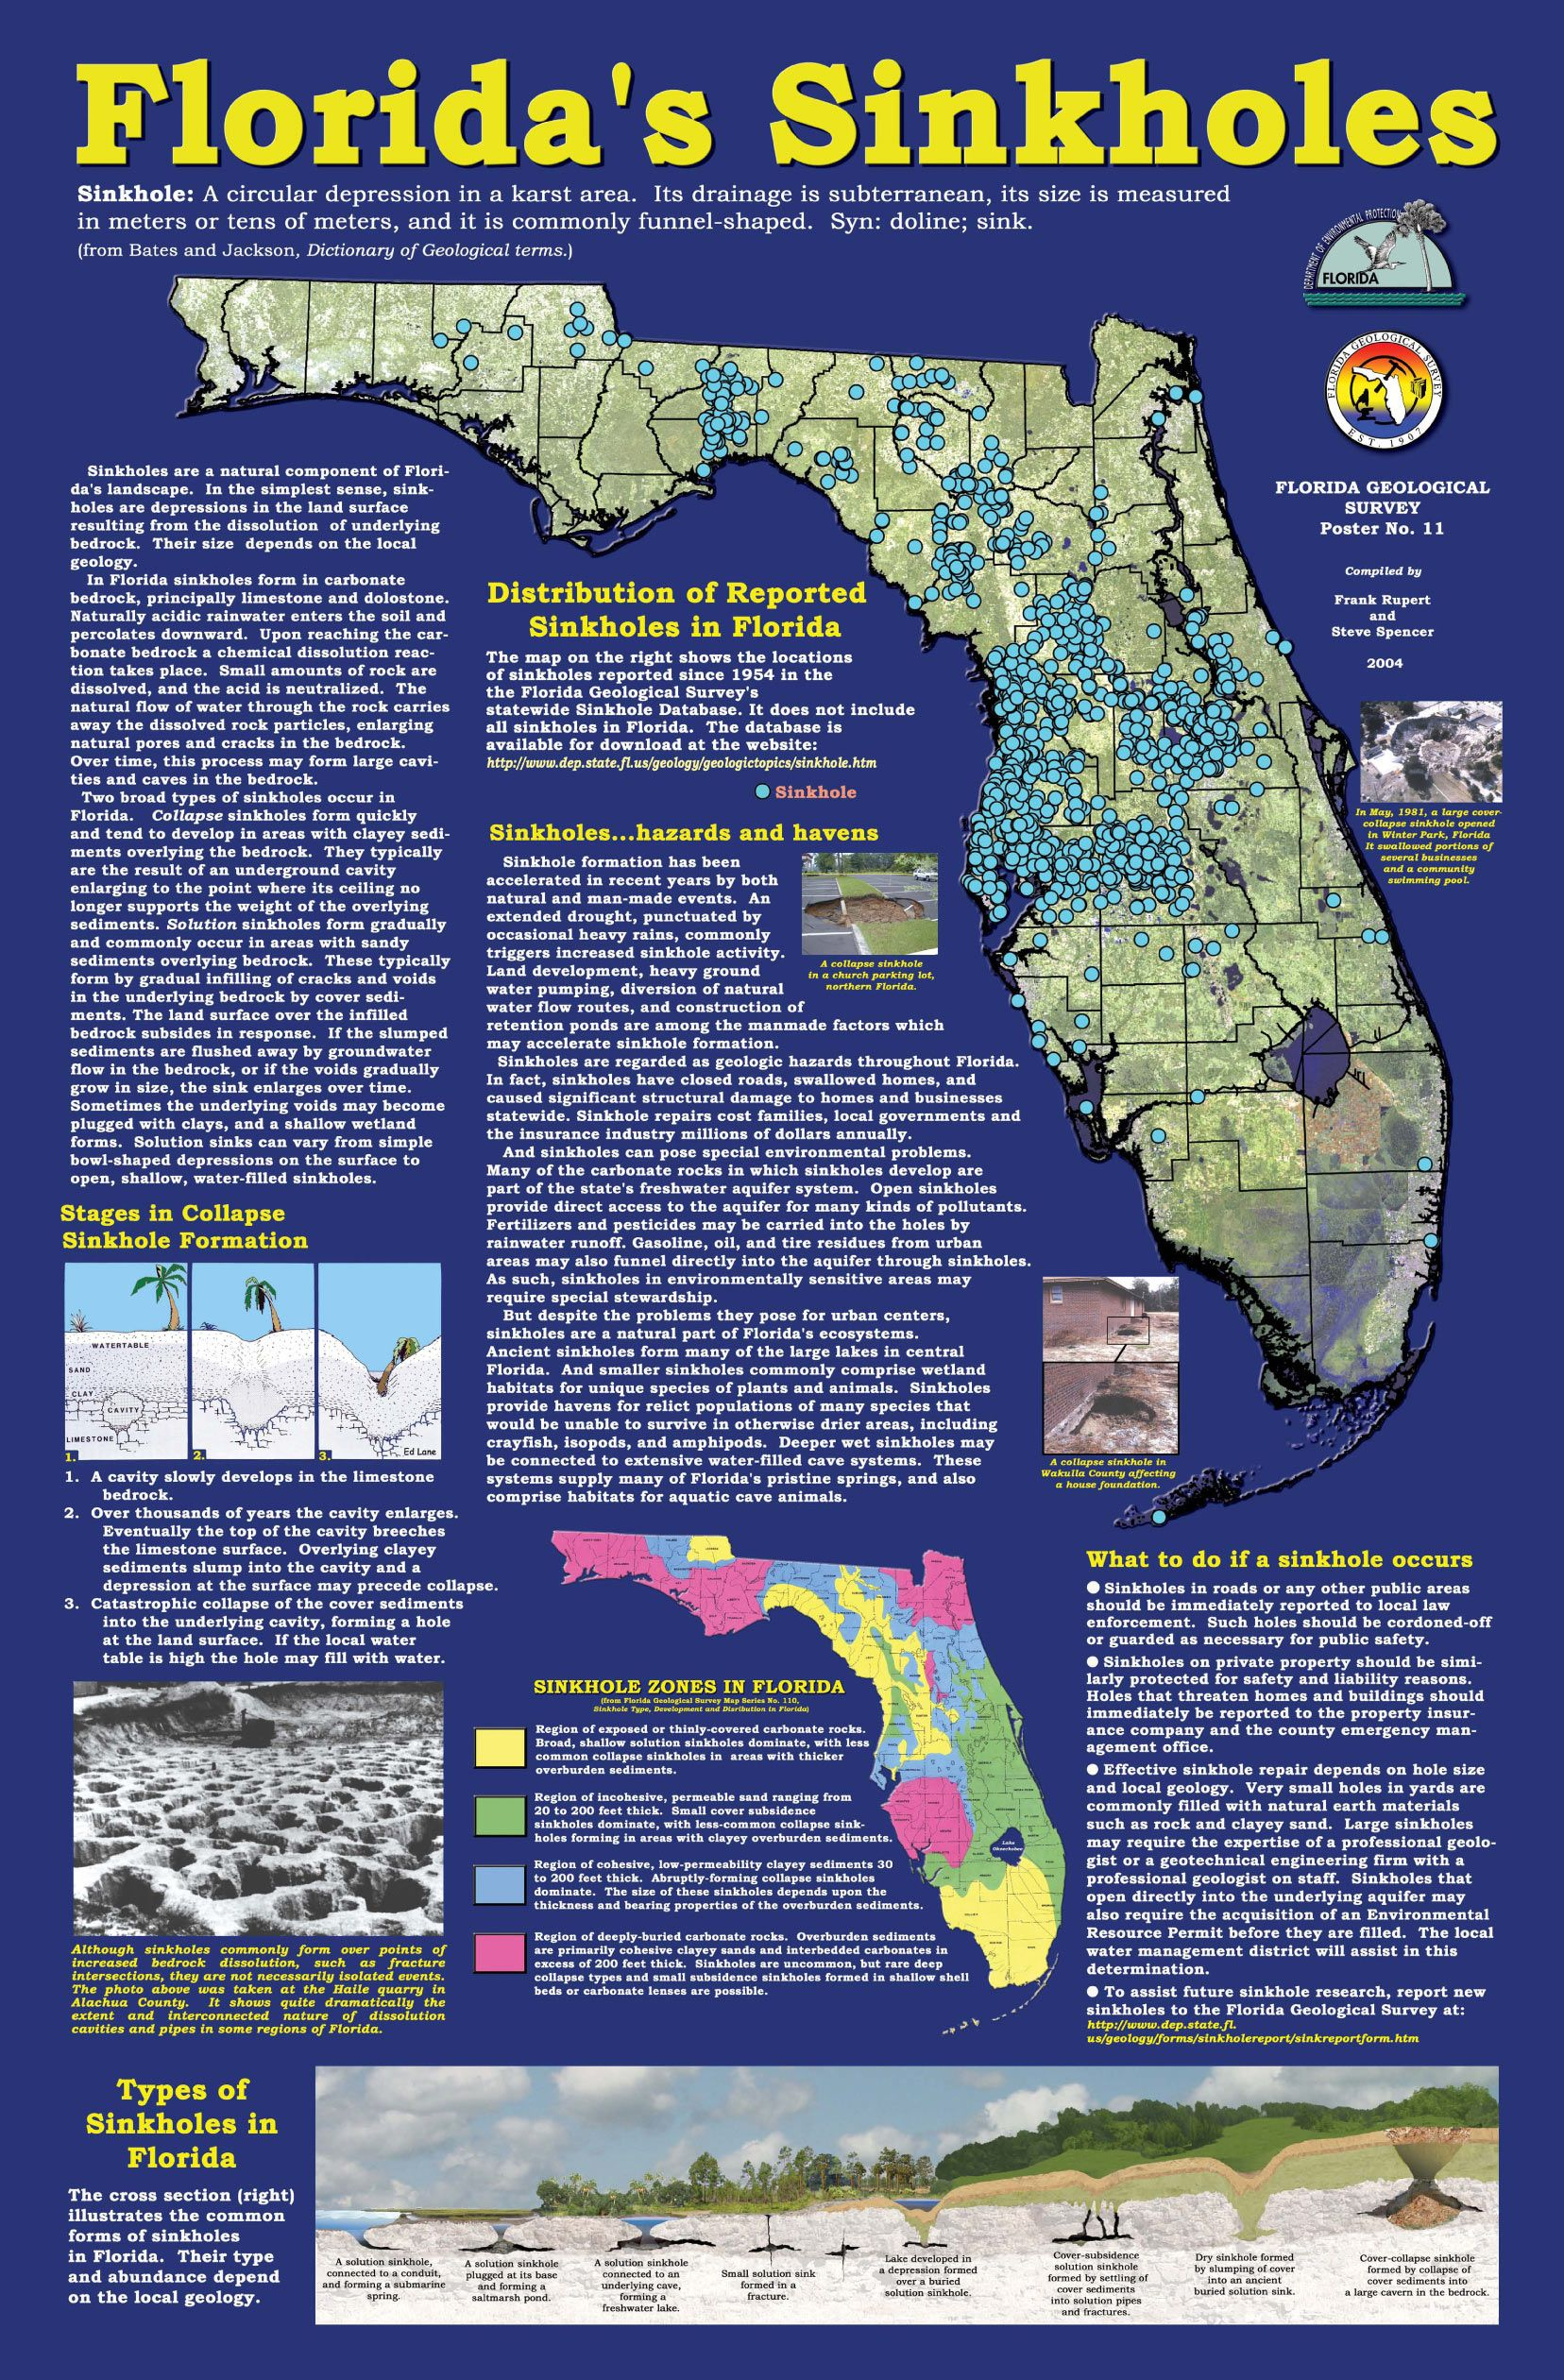 Florida Sink Hole Map.Florida Sinkhole Map Florida Sinkhole Map Florida Florida